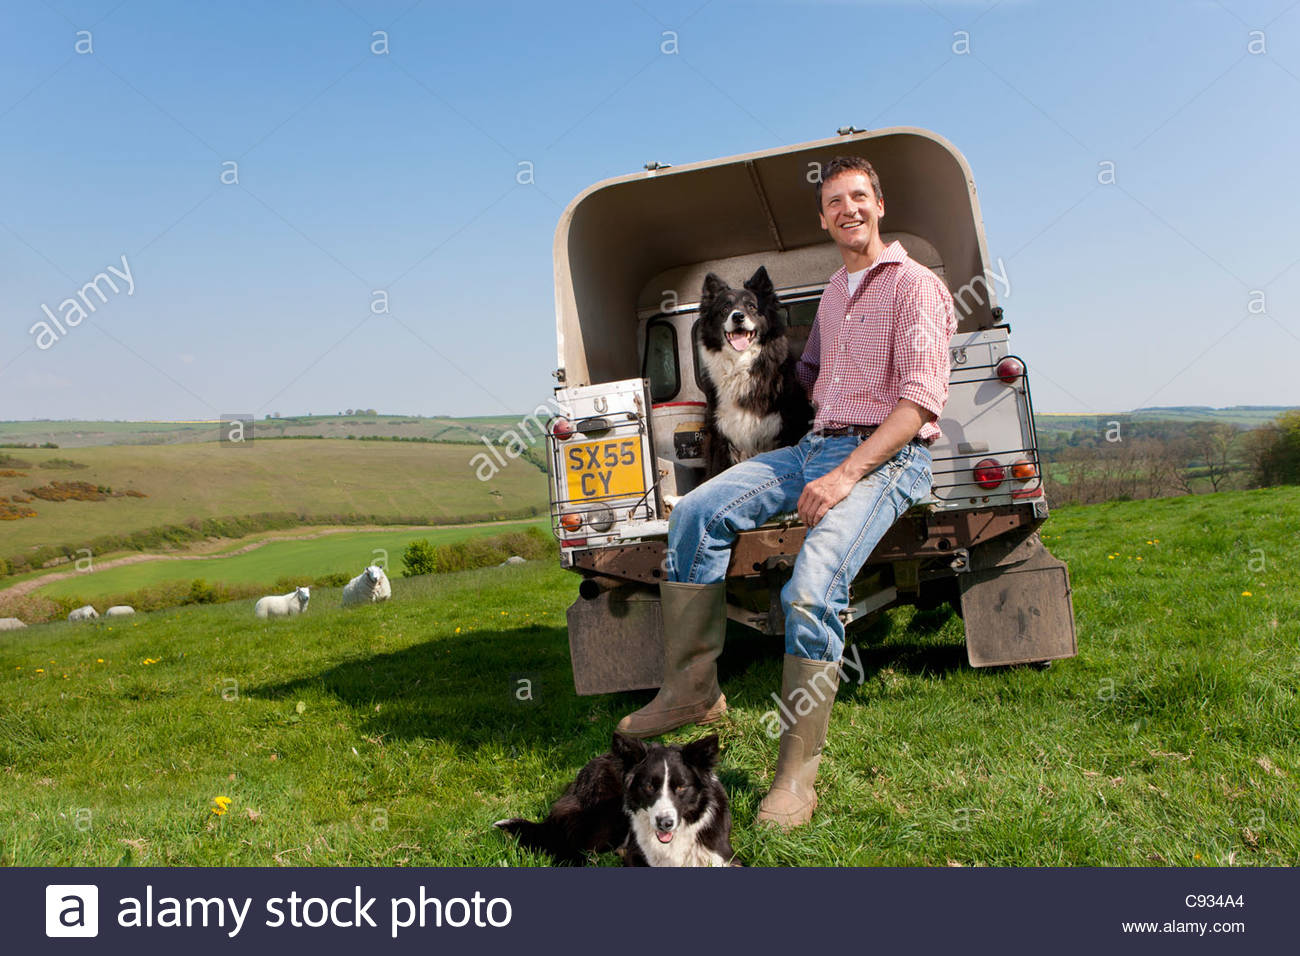 Portrait of shepherd with dog sitting on tailgate of truck Stock Photo